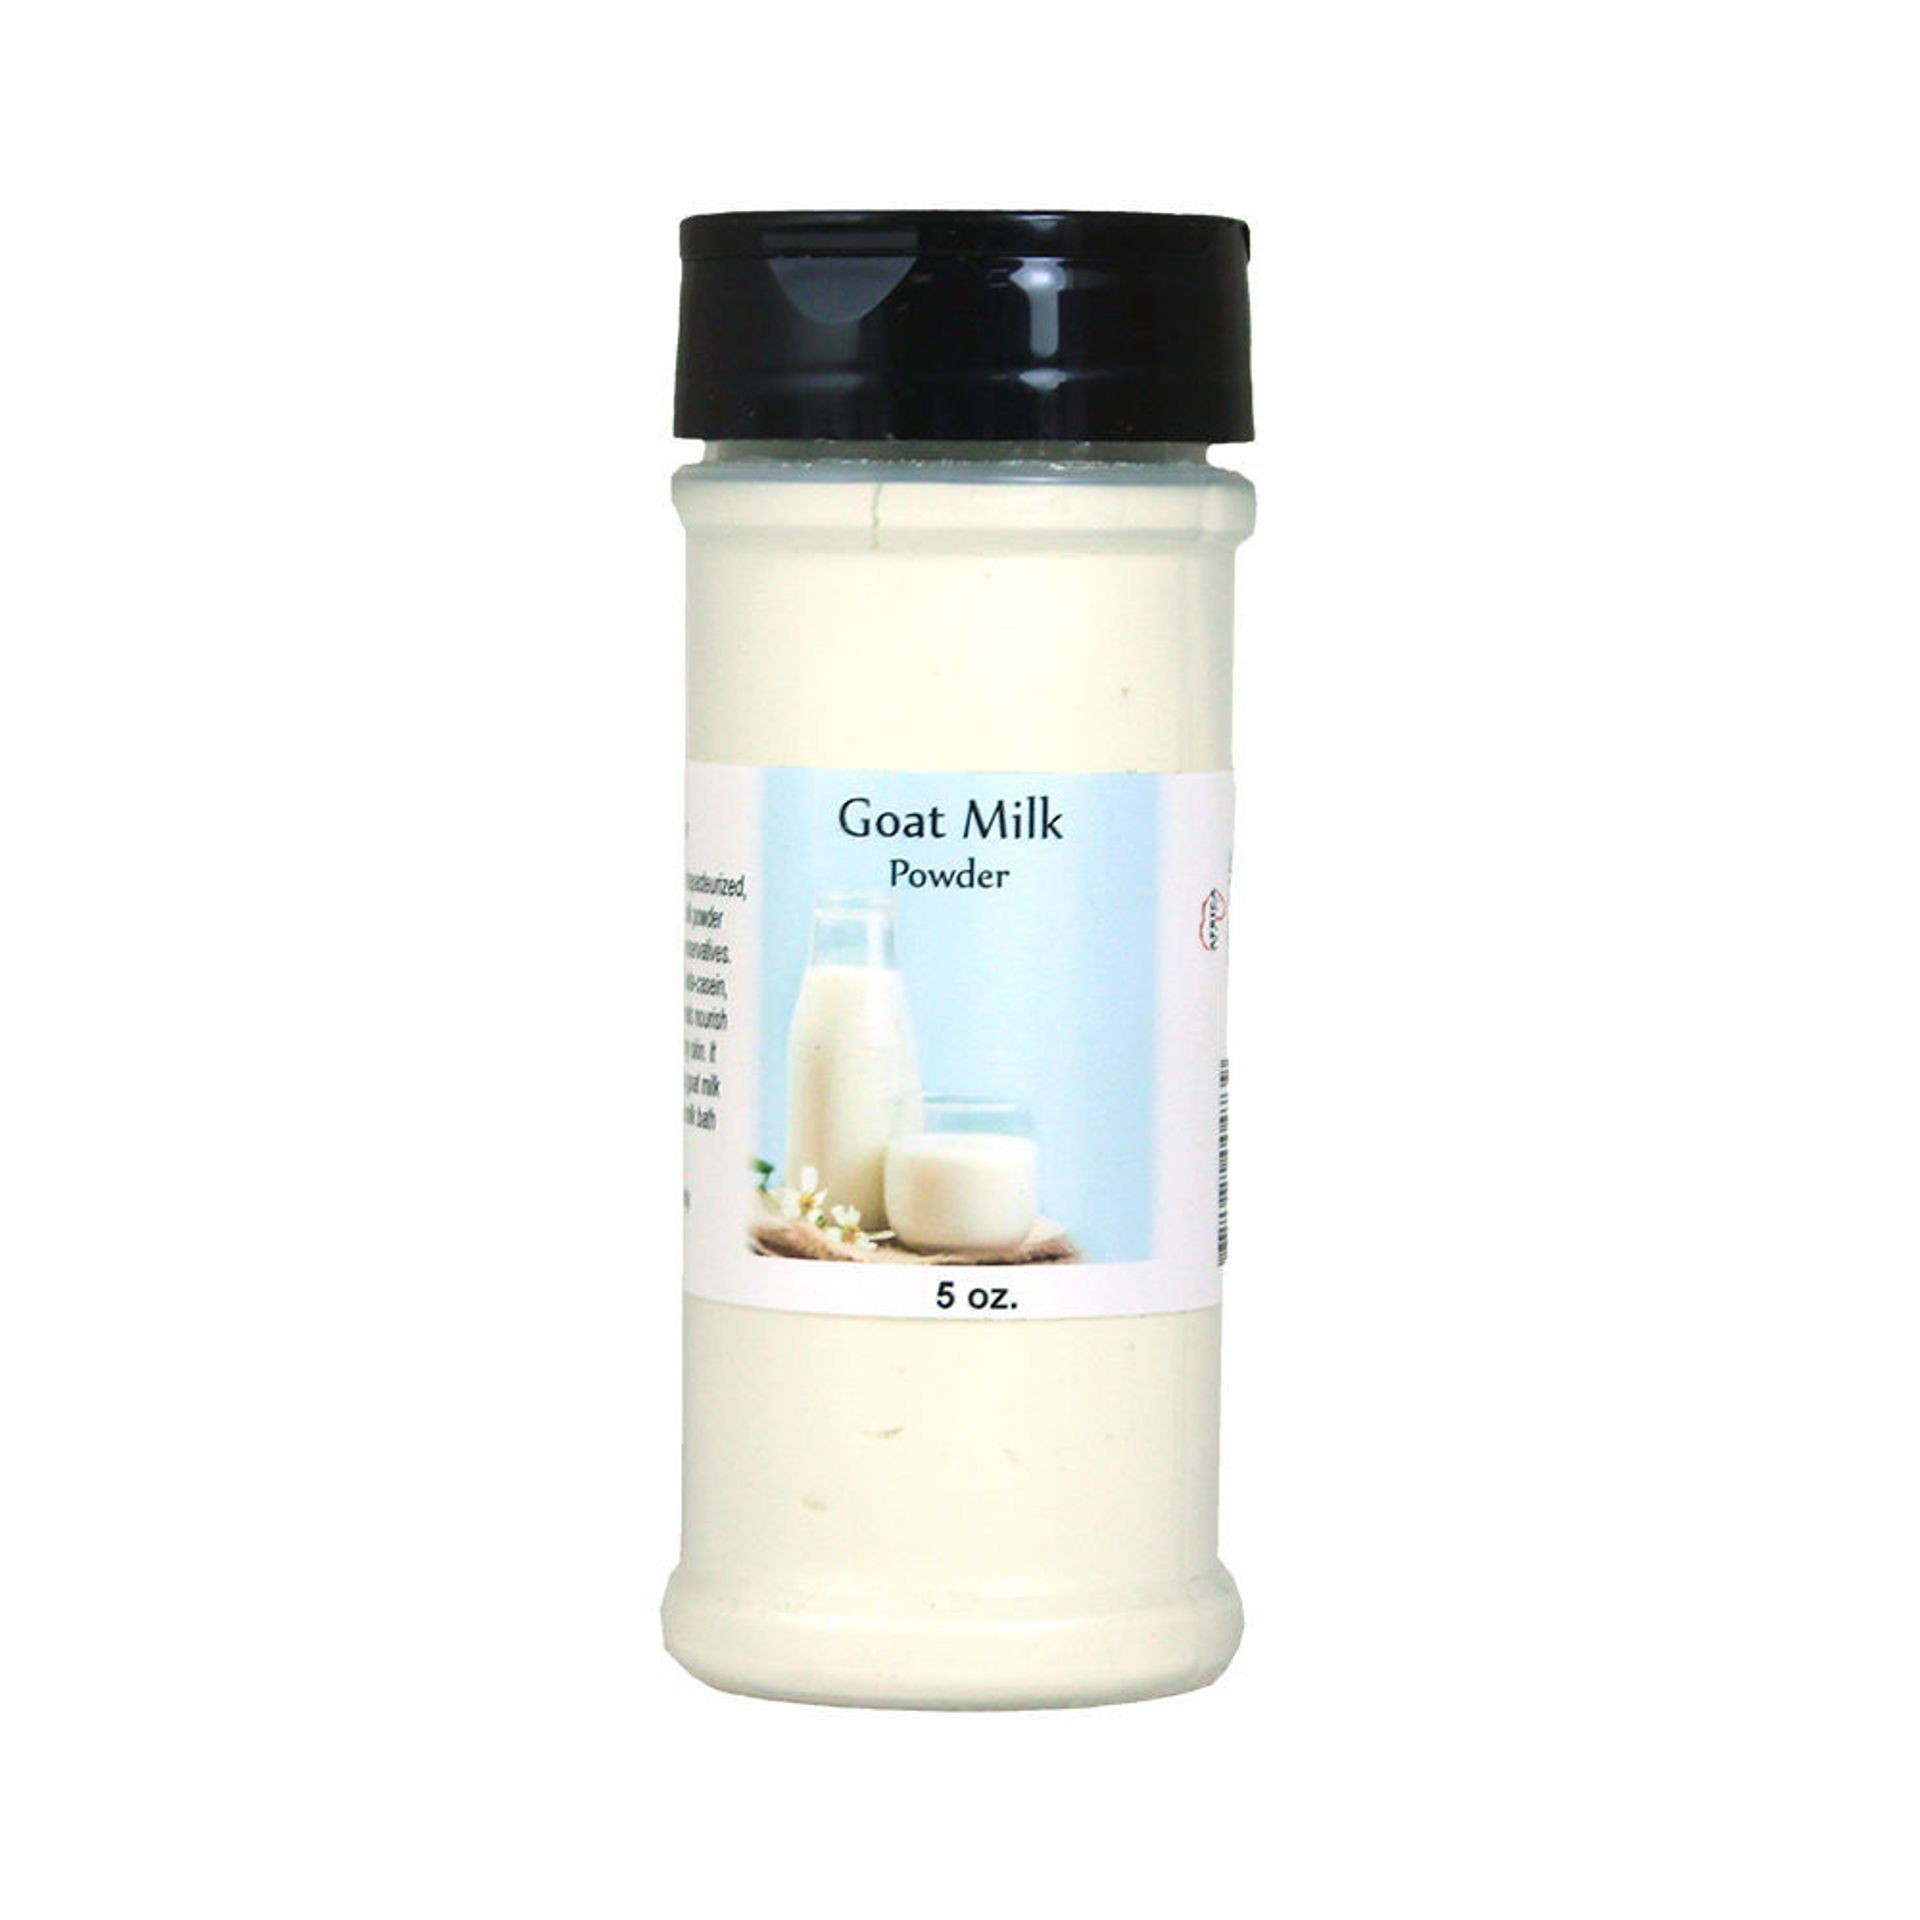 Picture of Goat Milk Powder - 5 oz.